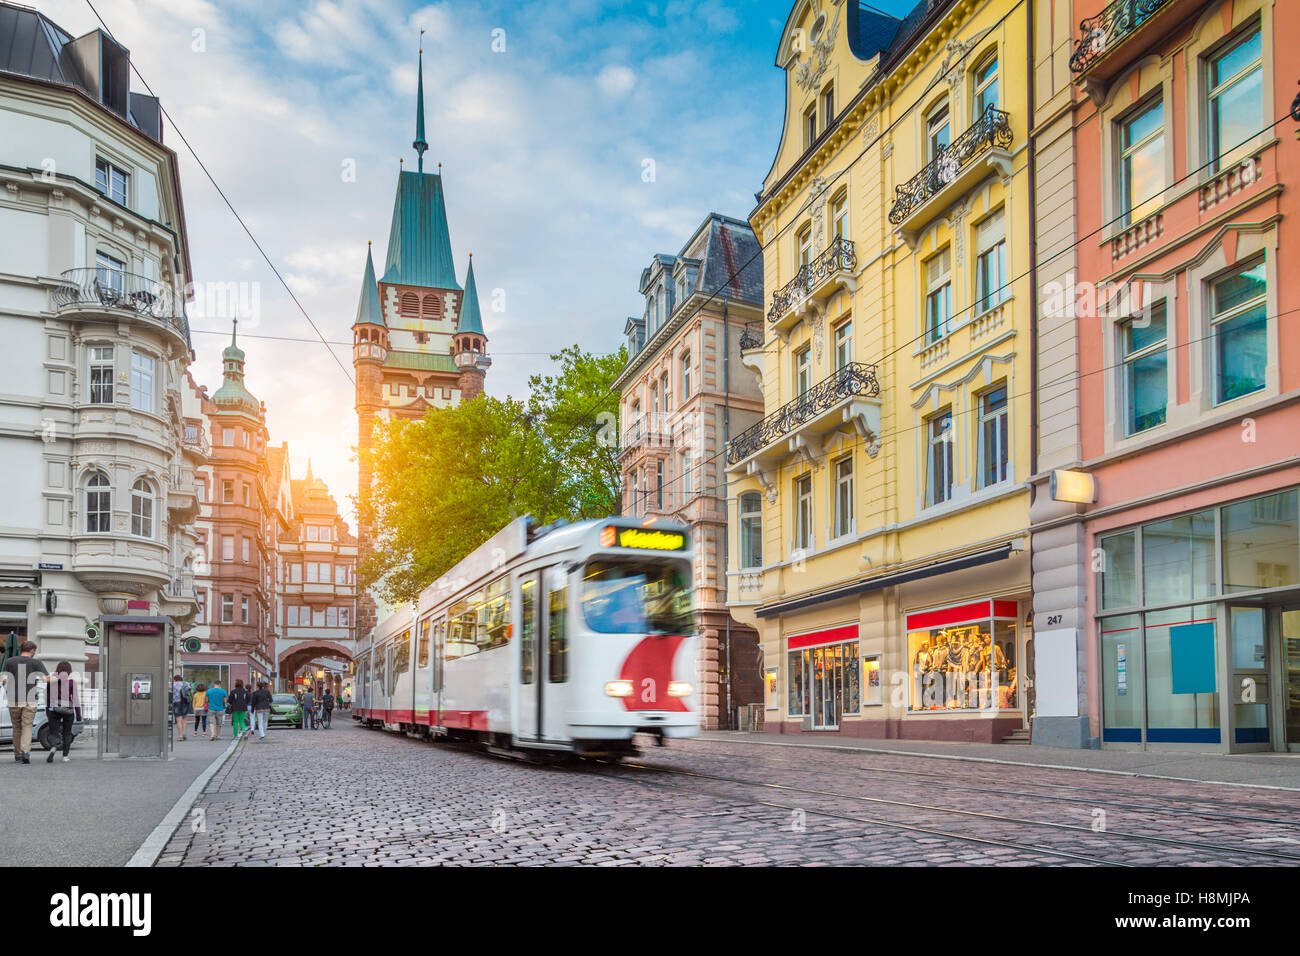 historic town of freiburg im breisgau with traditional tram and stock photo 125843602 alamy. Black Bedroom Furniture Sets. Home Design Ideas